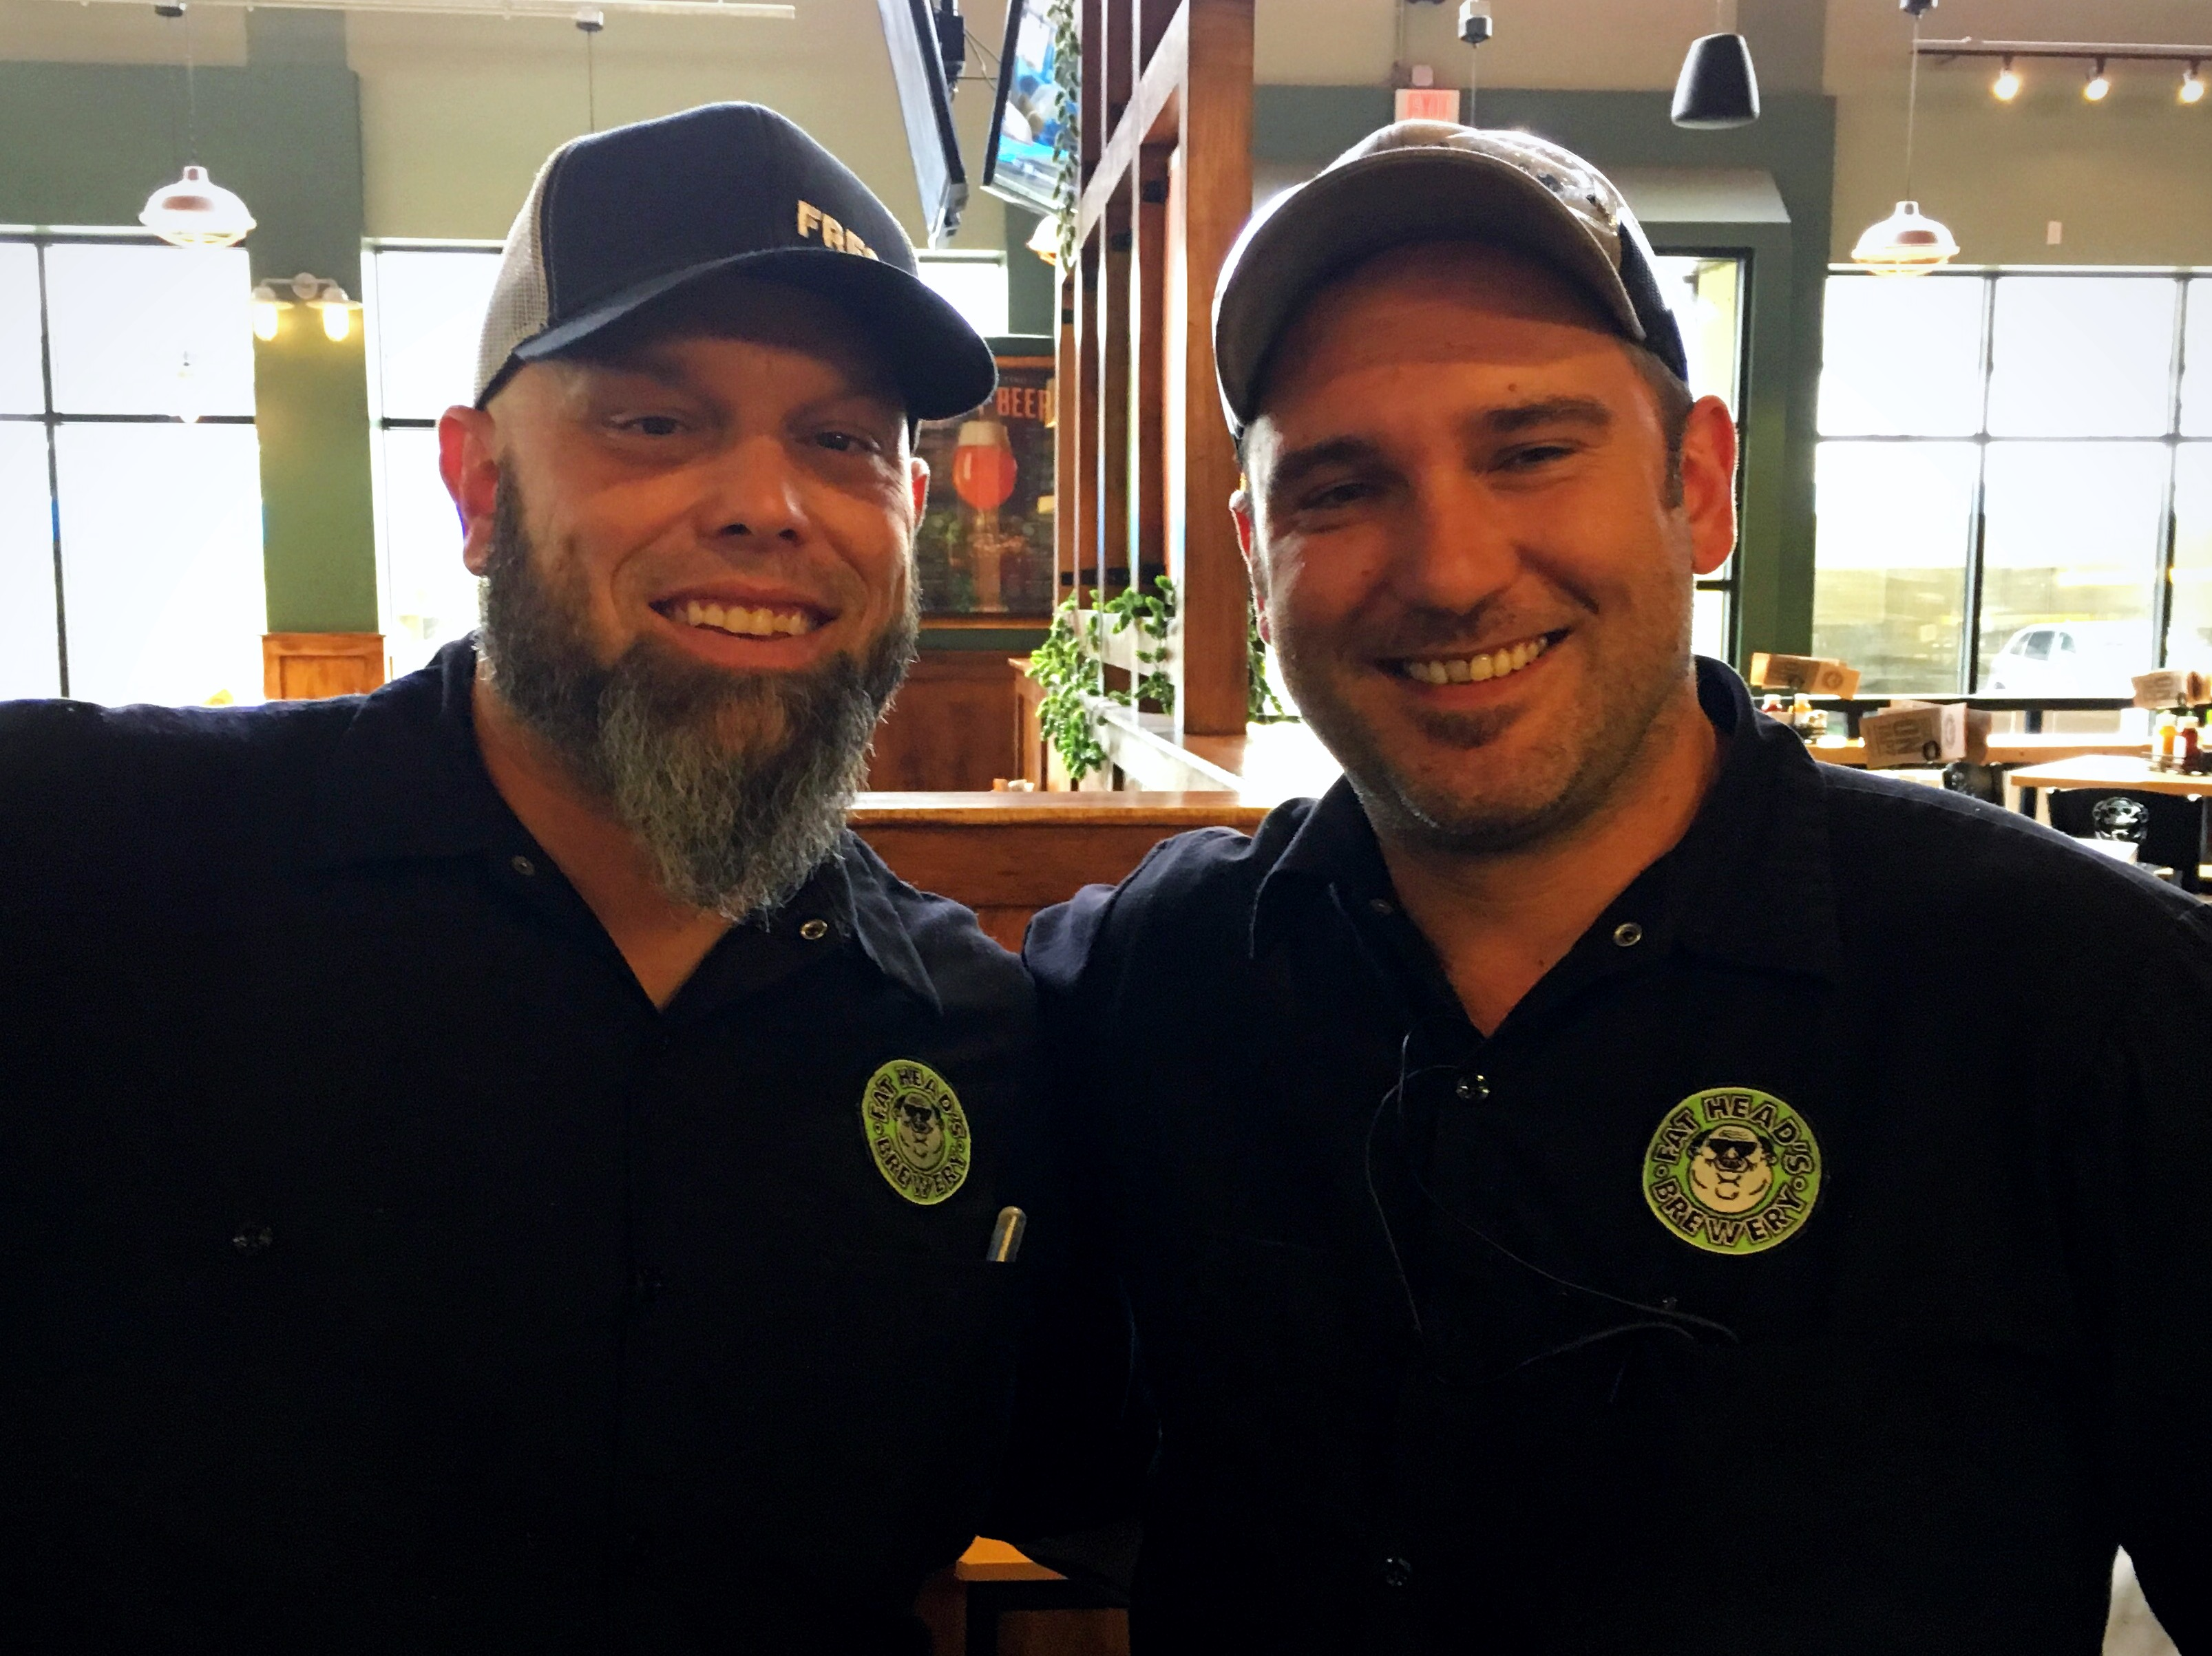 The brewers behind the fine beers at Fat Head's, Michael Hunsaker and Eric Van Tassel at Fat Head's Brewery in Portland, Oregon.